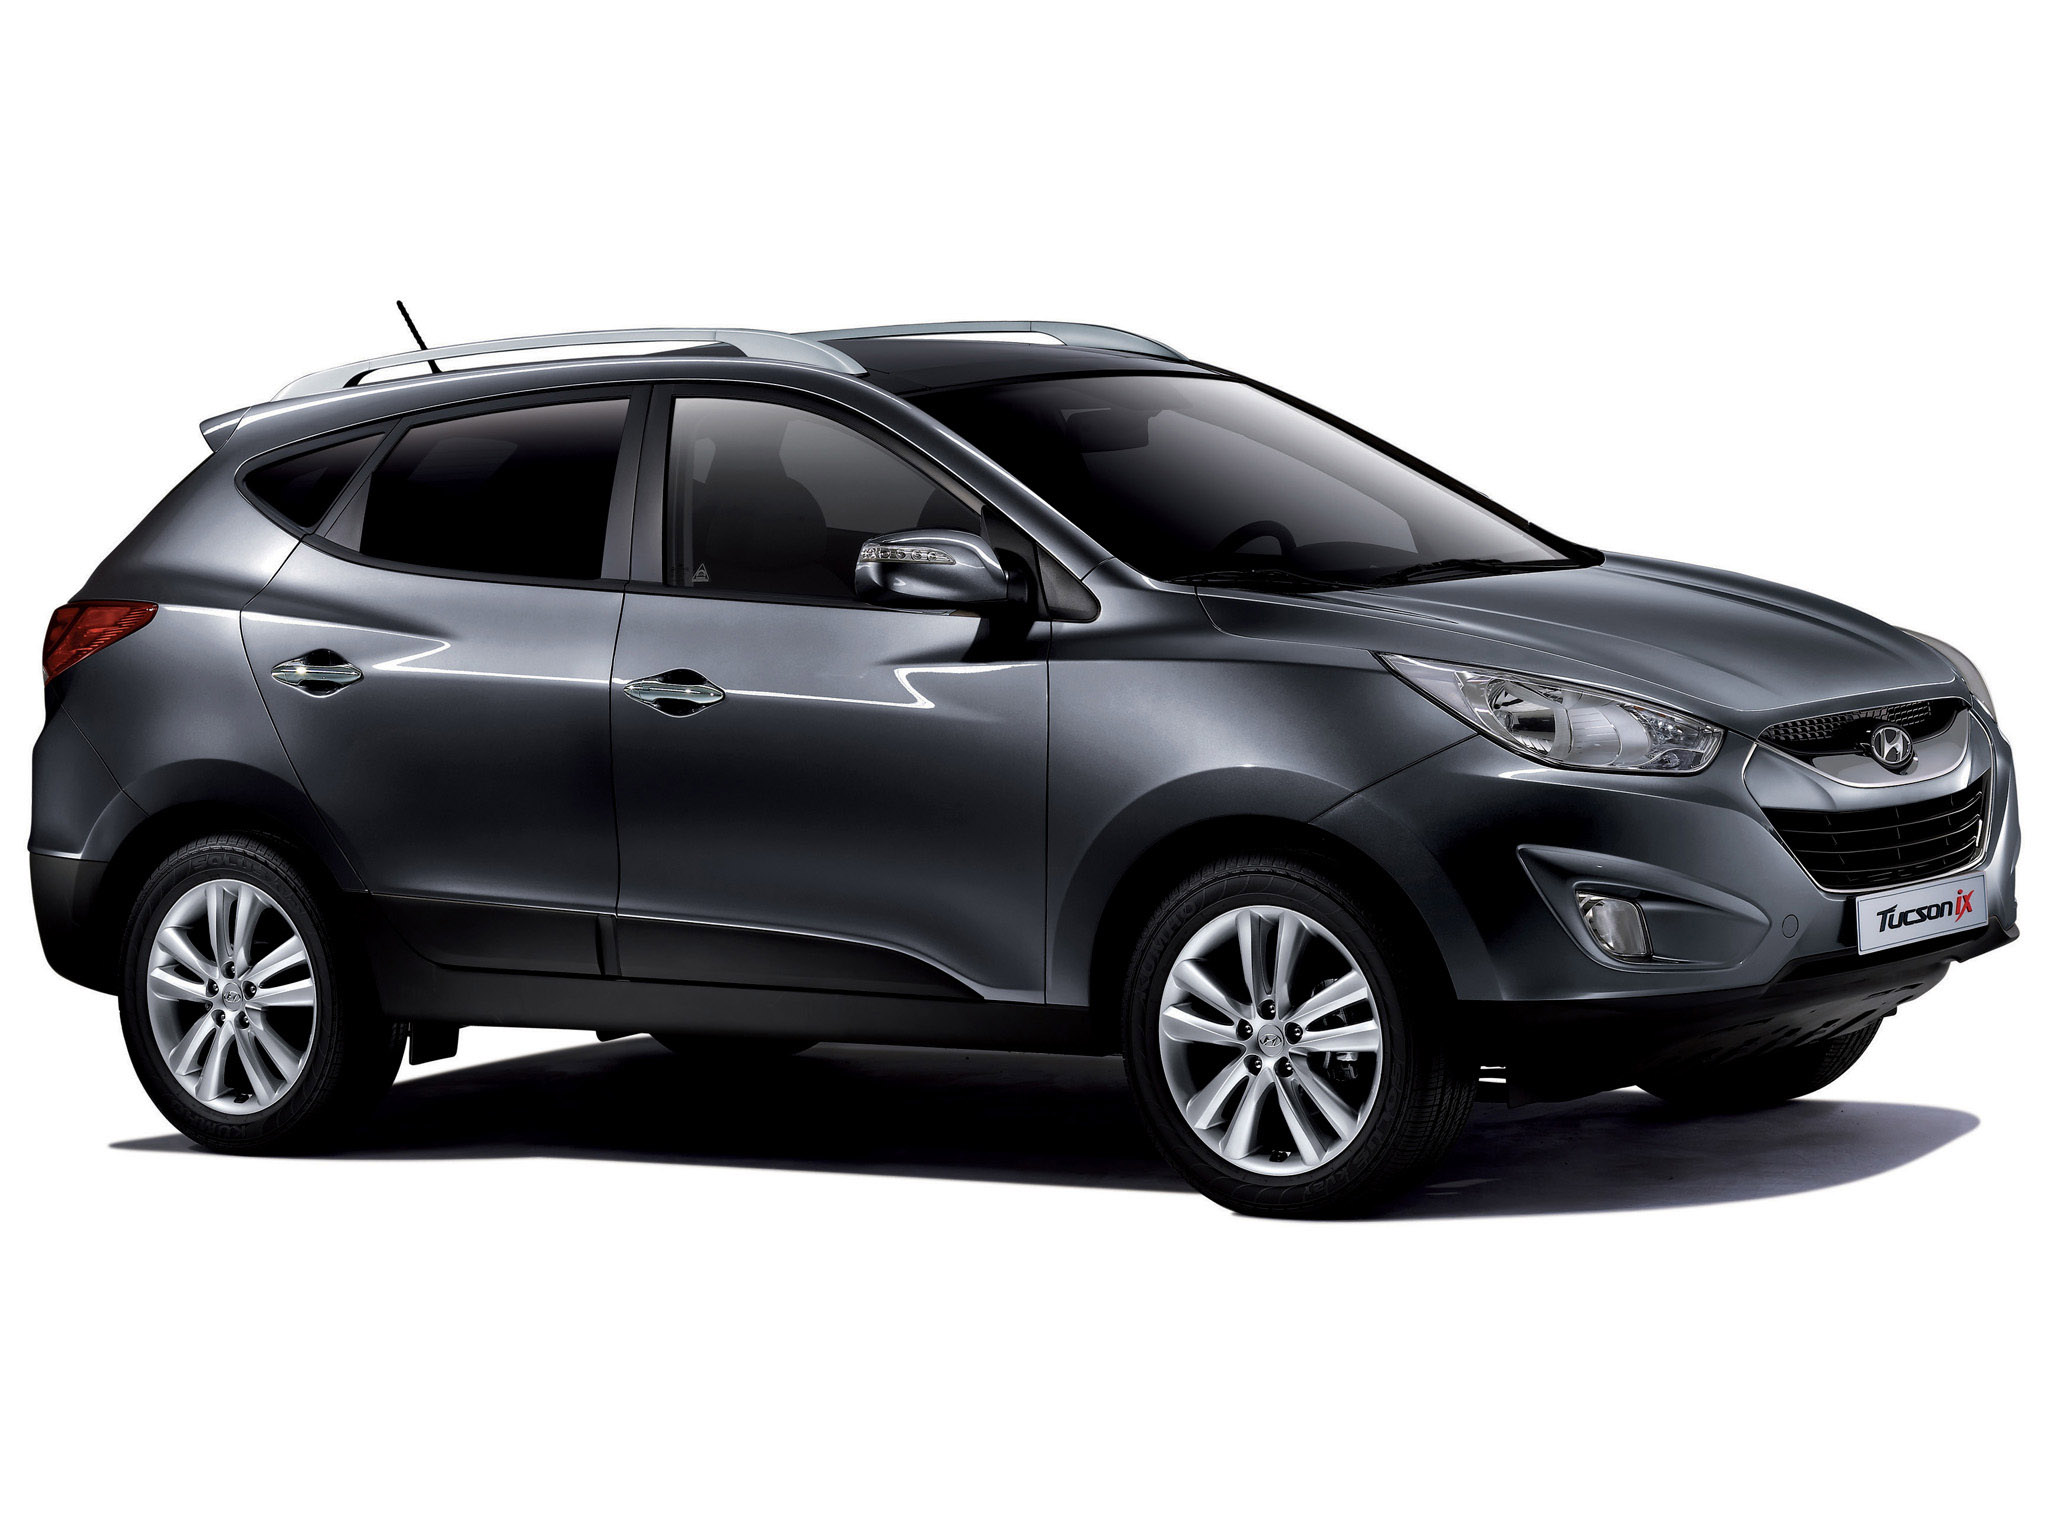 Hyundai tucson photo - 1